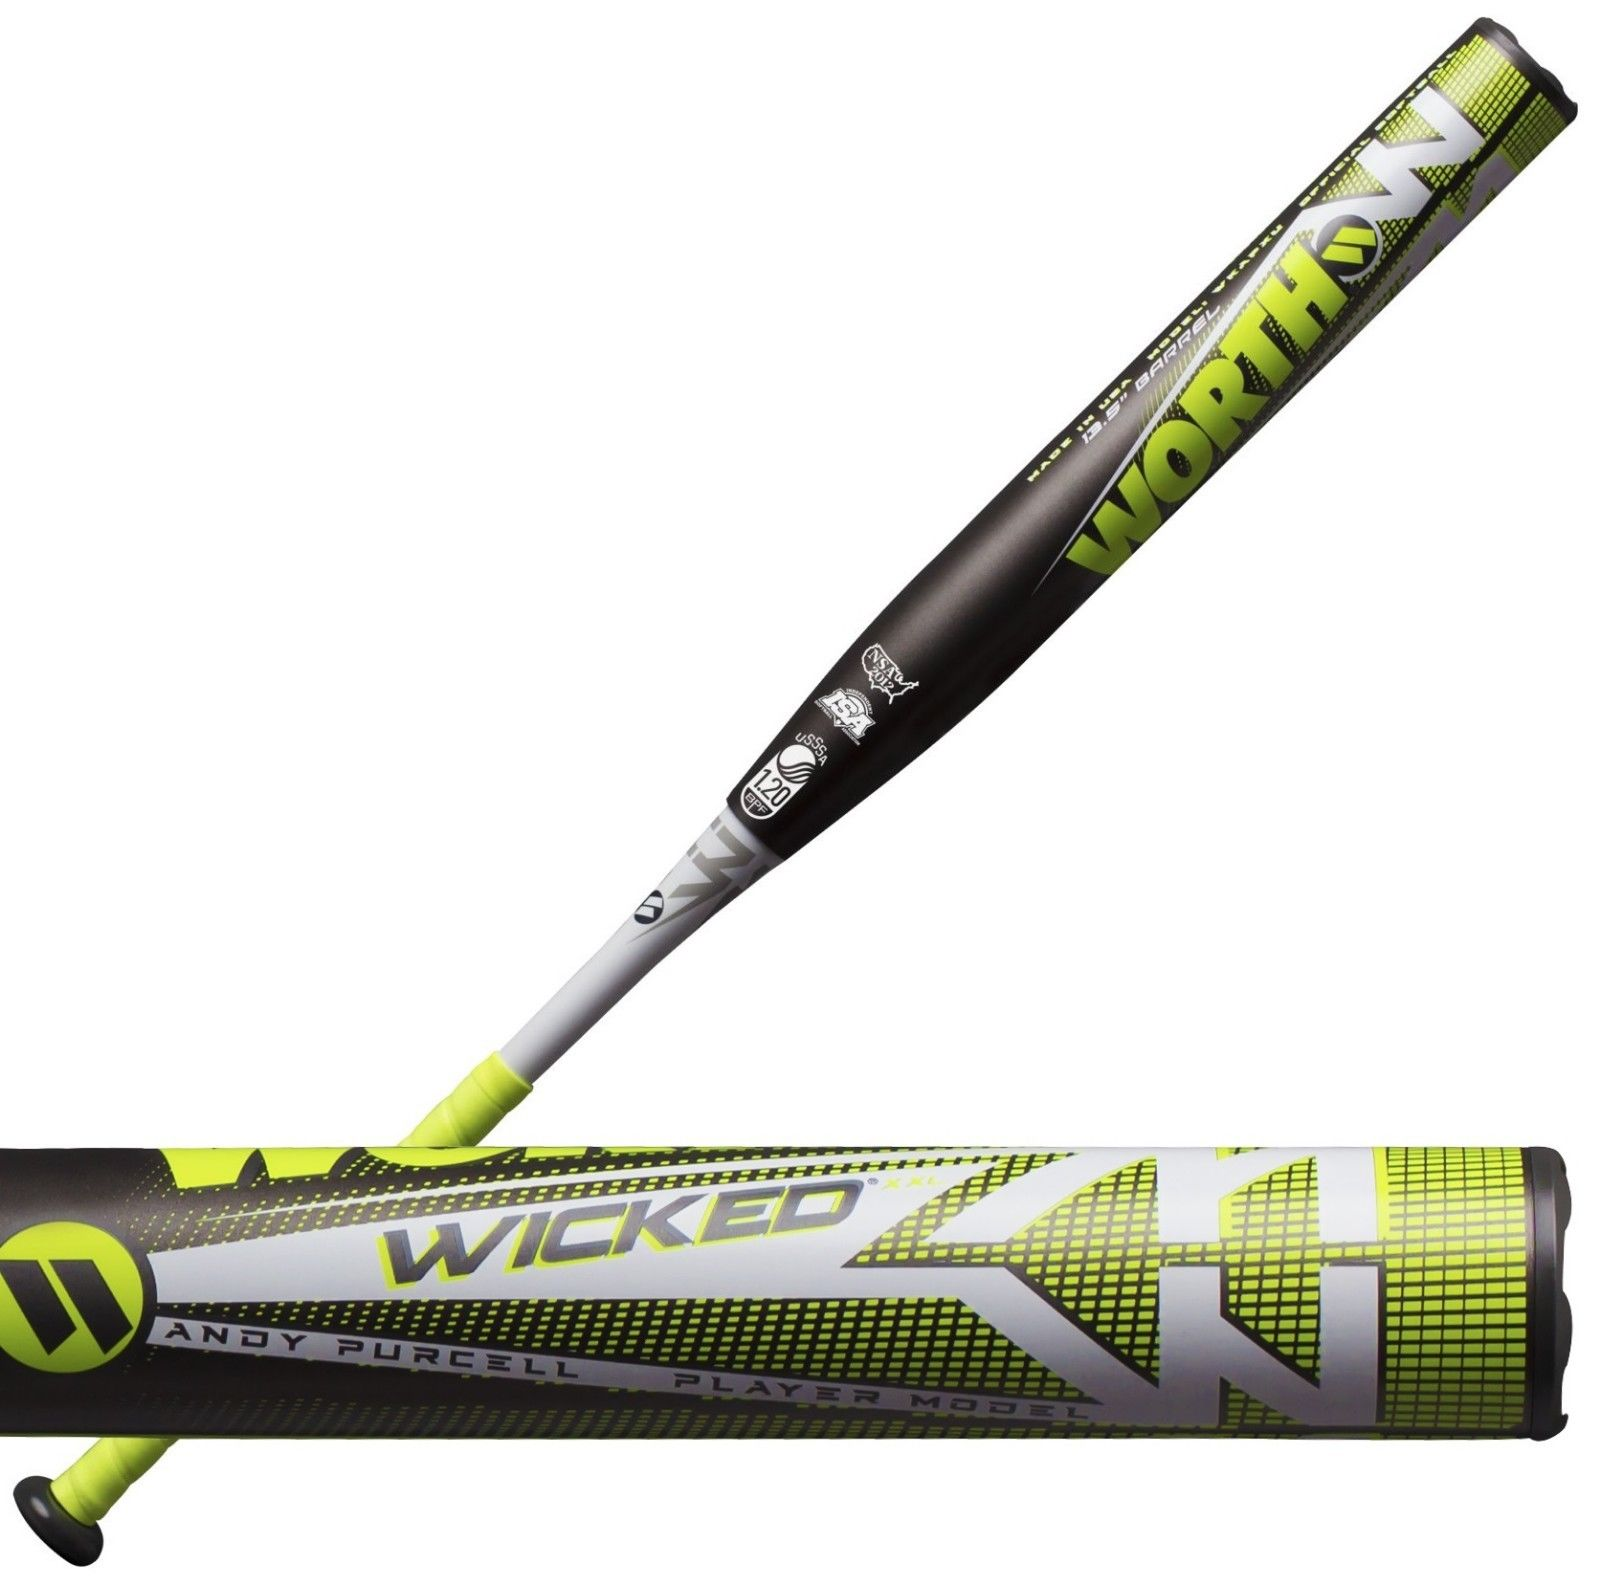 2019 Worth Wicked Andy Purcell Xxl Wkapxu Usssa Slowpitch